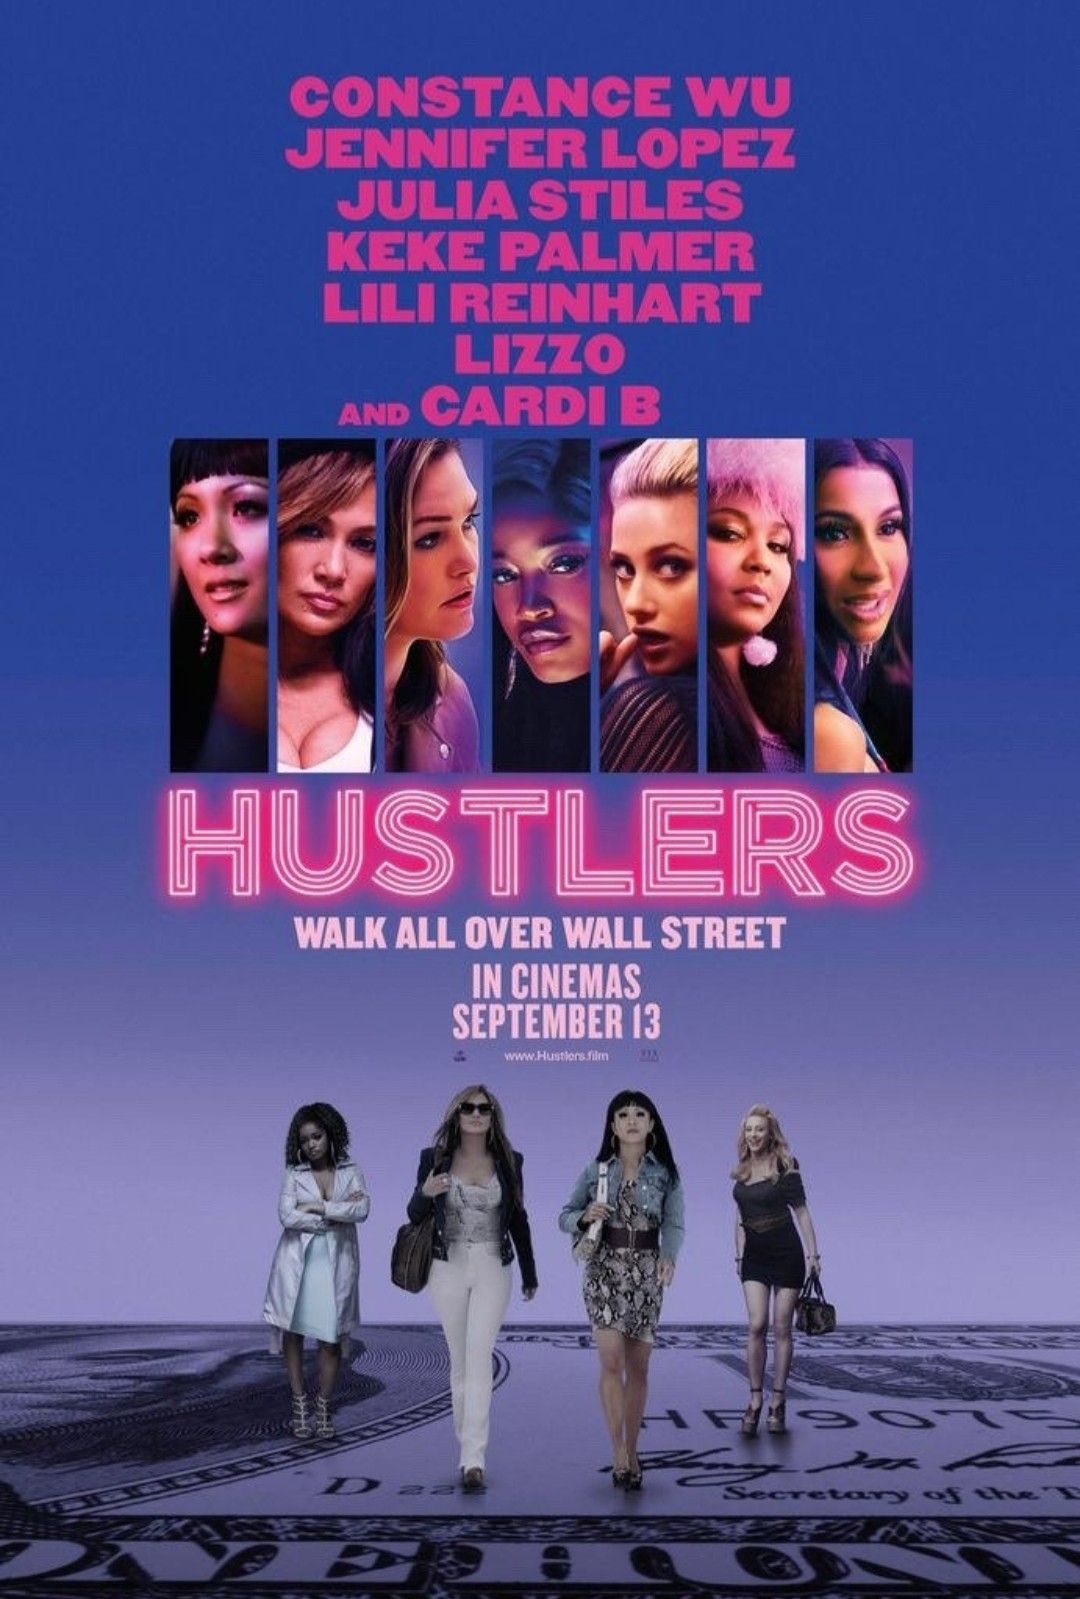 Inspired by the viral New York Magazine article, Hustlers follows a crew of savvy former strip club employees who band together to turn the tables on their Wall Street clients.